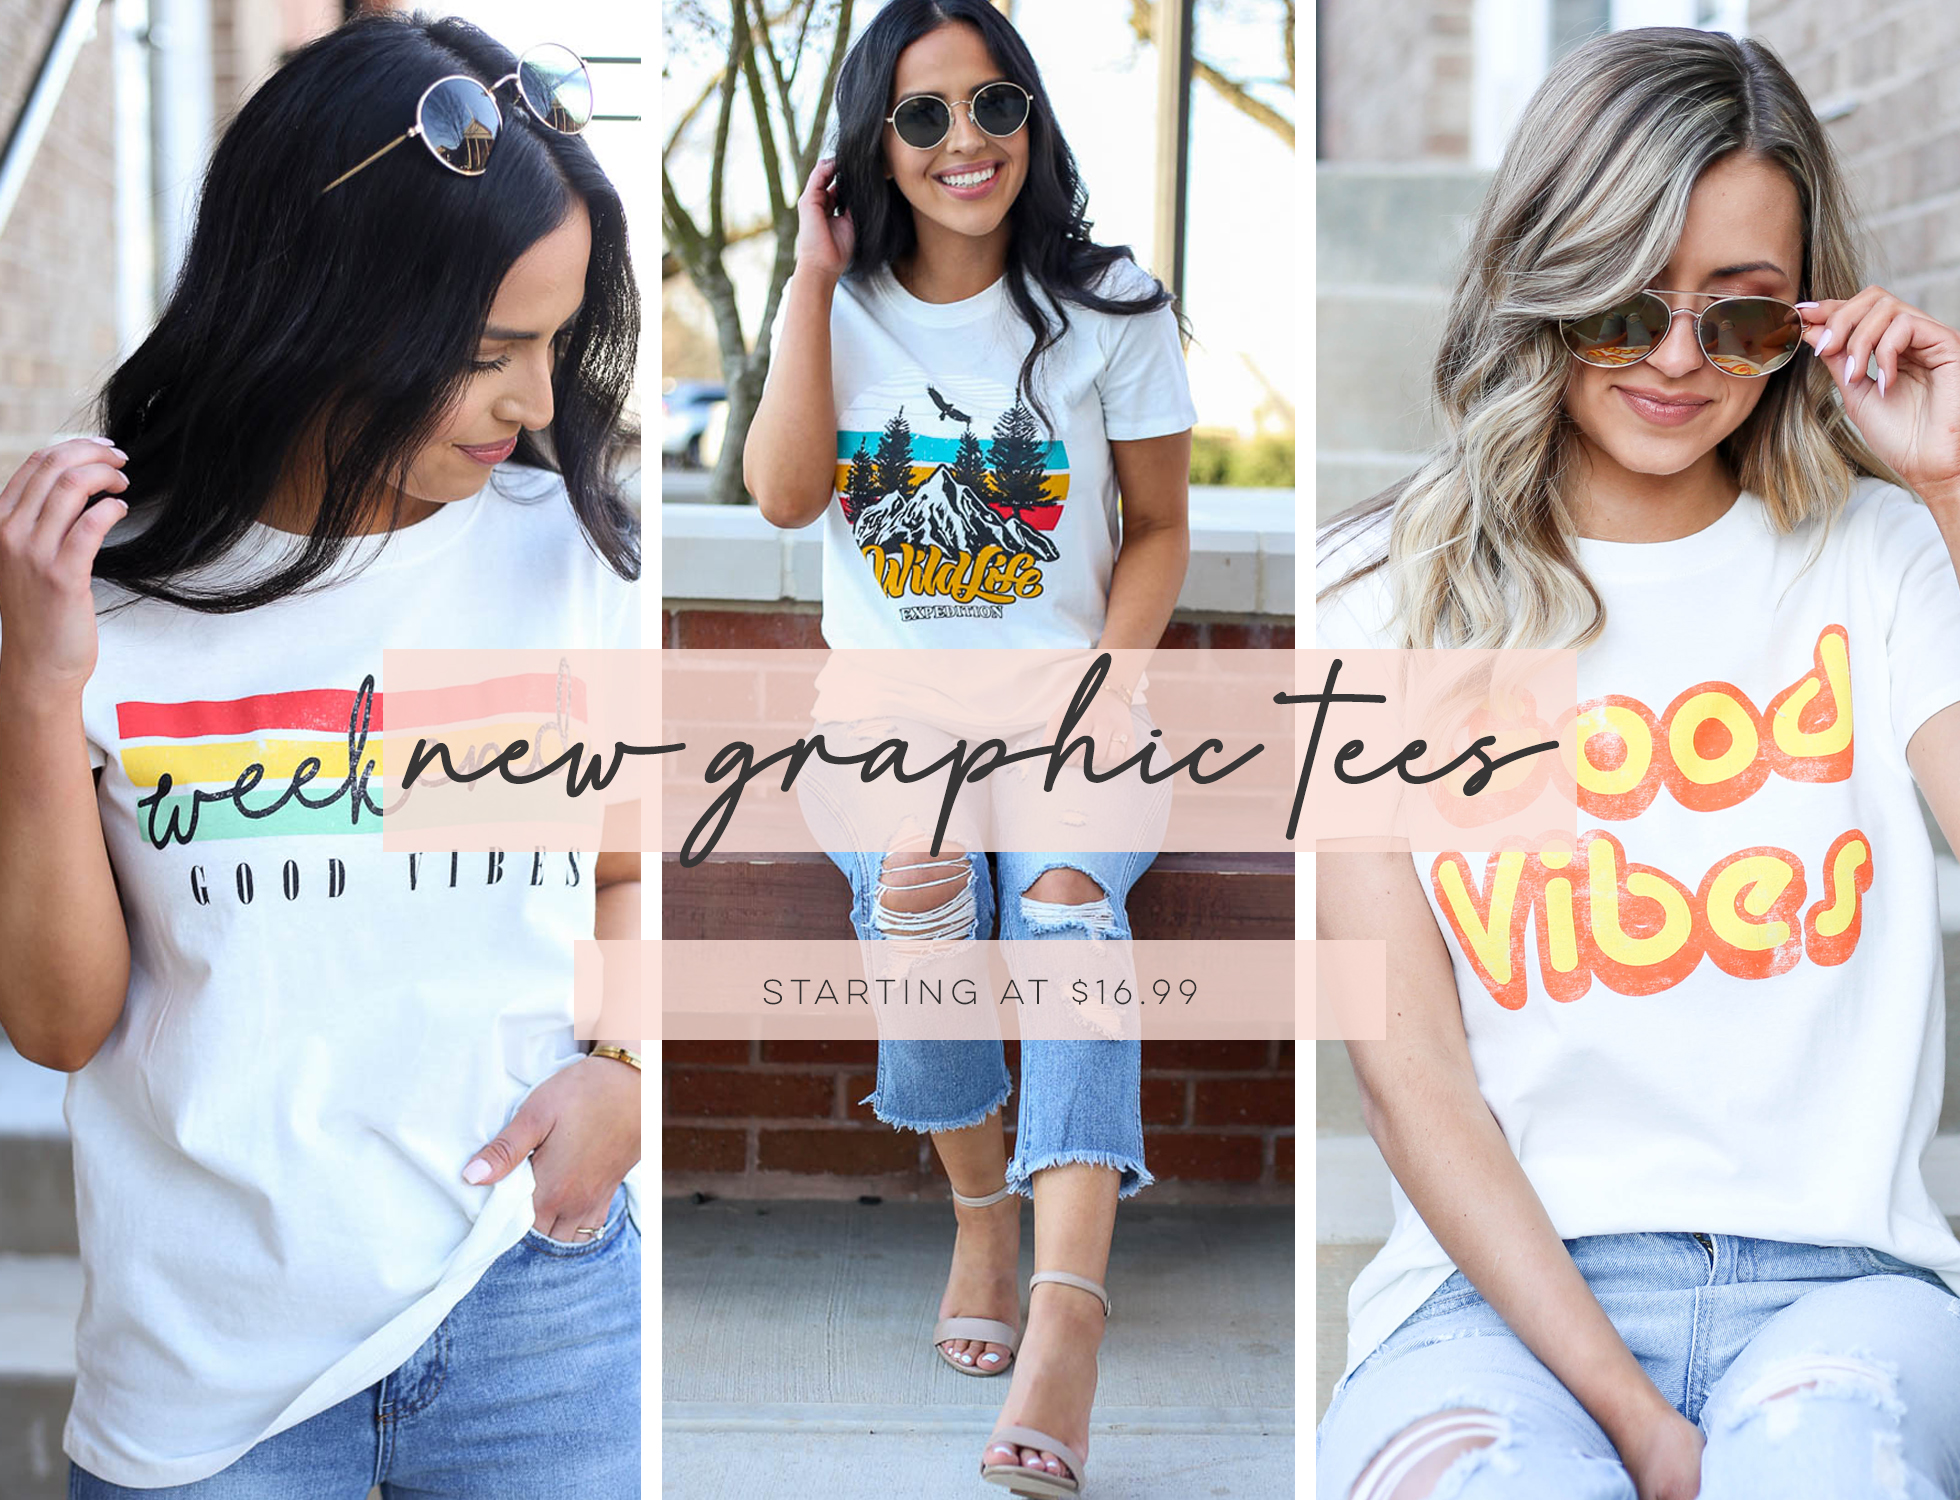 New Graphic Tees weekend good vibes, wildlife, and good vibes